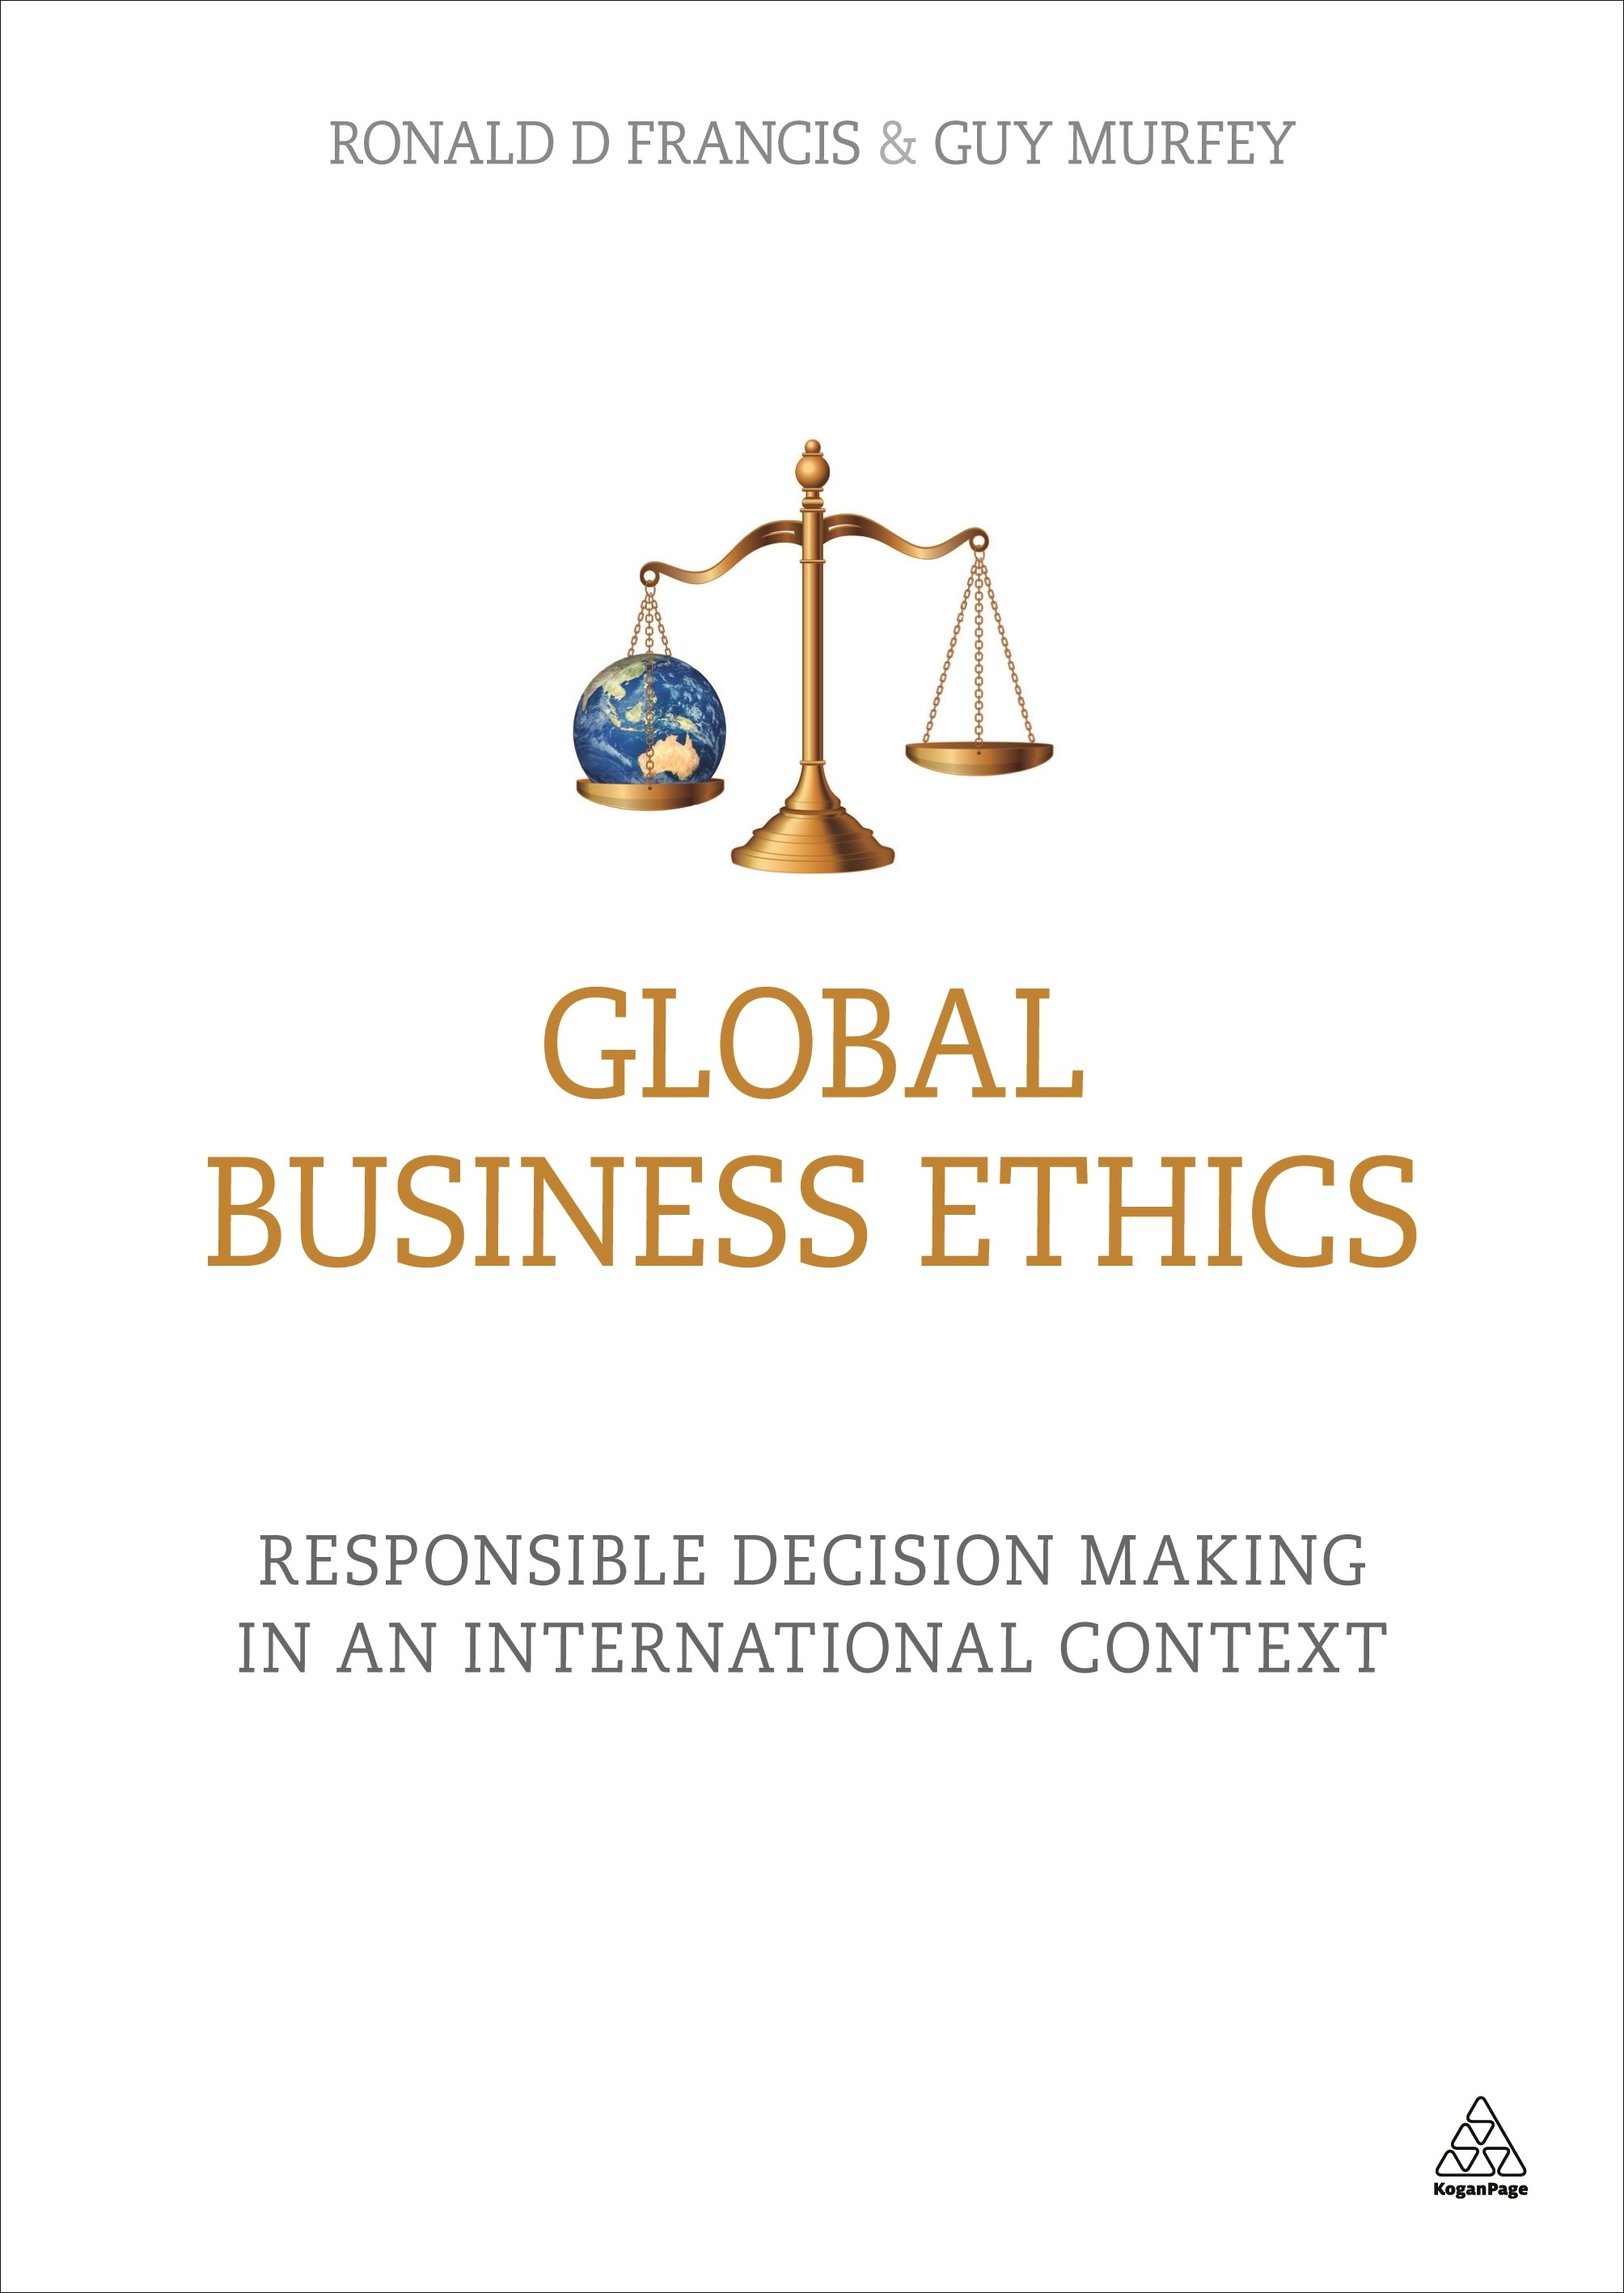 Global Business Ethics Responsible Decision Making in an International Context